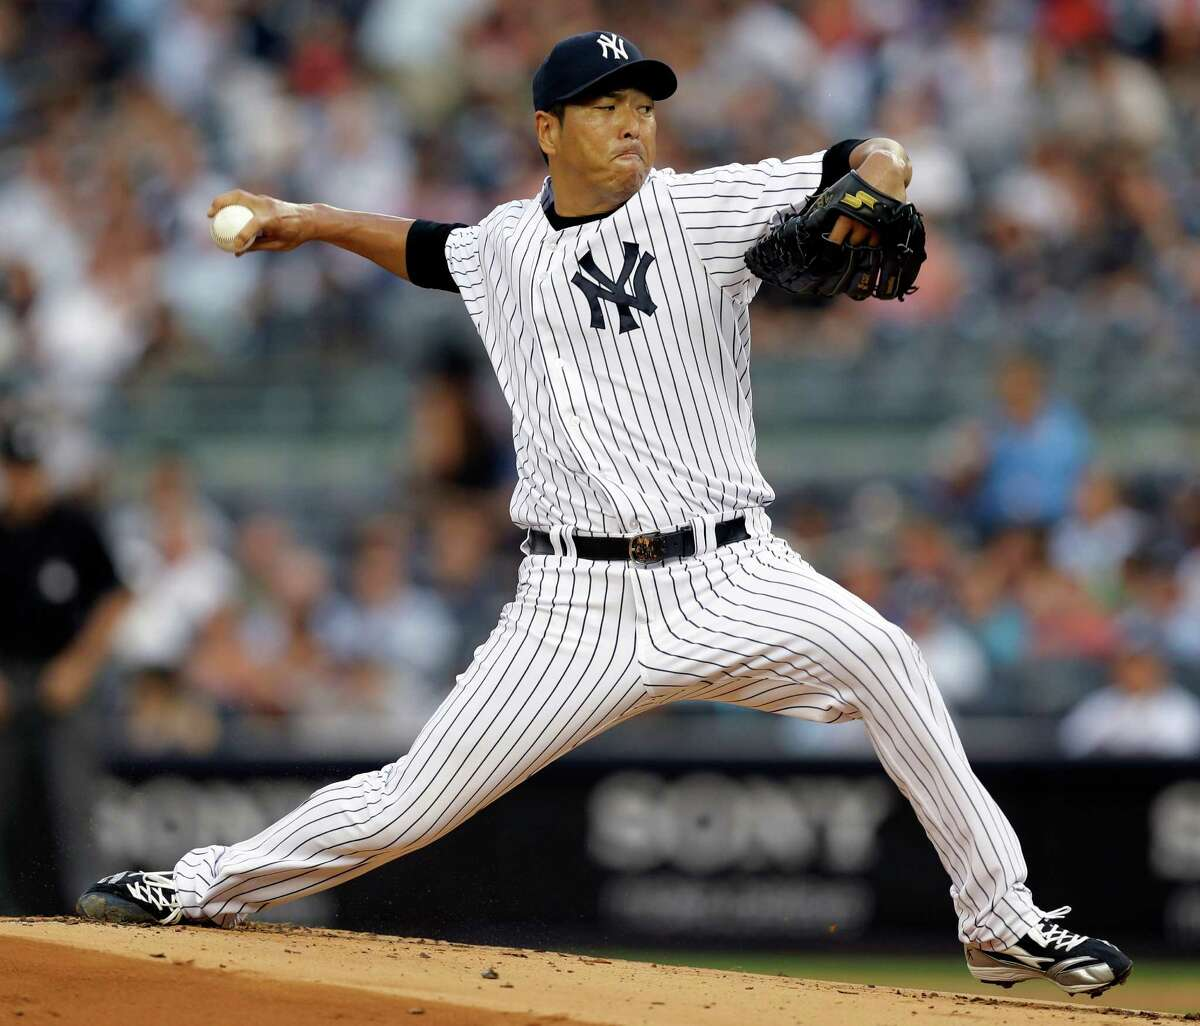 New York Yankees starting pitcher Hiroki Kuroda delivers in the first inning of a baseball game against the Los Angeles Angels, Monday, Aug. 12, 2013, in New York. (AP Photo/Kathy Willens) ORG XMIT: NYY101